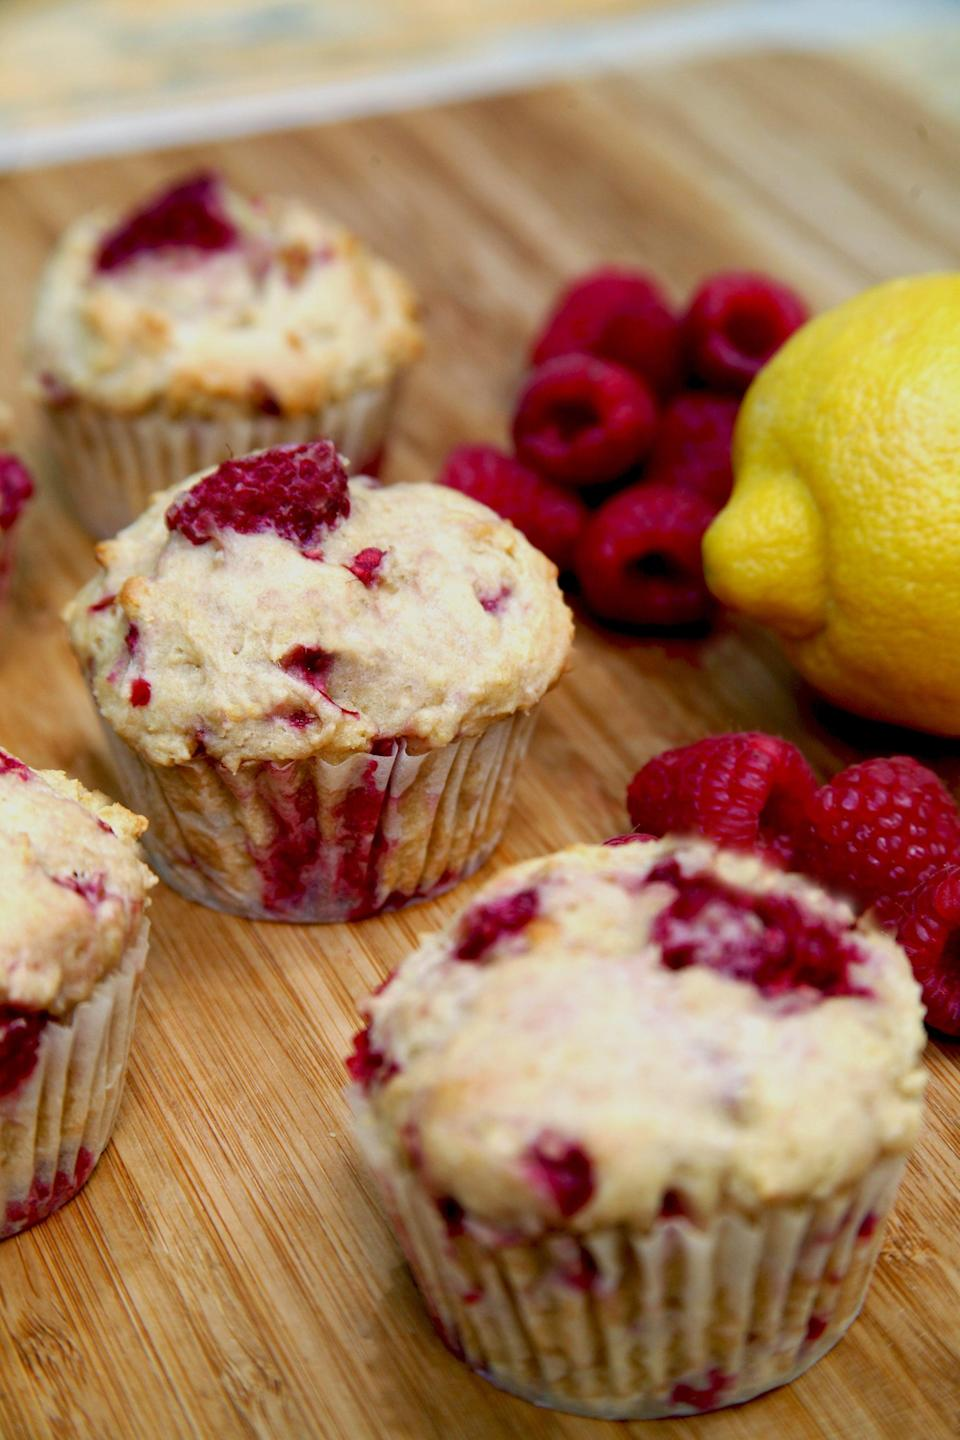 "<p>These are so light and summery, with bursts of juicy raspberries - perfect to bake up for brunch.</p> <p><strong>Calories:</strong> 180 per muffin<br> <strong>Protein:</strong> 5.4 grams</p> <p><strong>Get the recipe:</strong> <a href=""https://www.popsugar.com/fitness/Recipe-Low-Sugar-High-Protein-Lemon-Raspberry-Muffins-17842967"" class=""link rapid-noclick-resp"" rel=""nofollow noopener"" target=""_blank"" data-ylk=""slk:low-sugar, high-protein lemon raspberry muffins"">low-sugar, high-protein lemon raspberry muffins</a></p>"